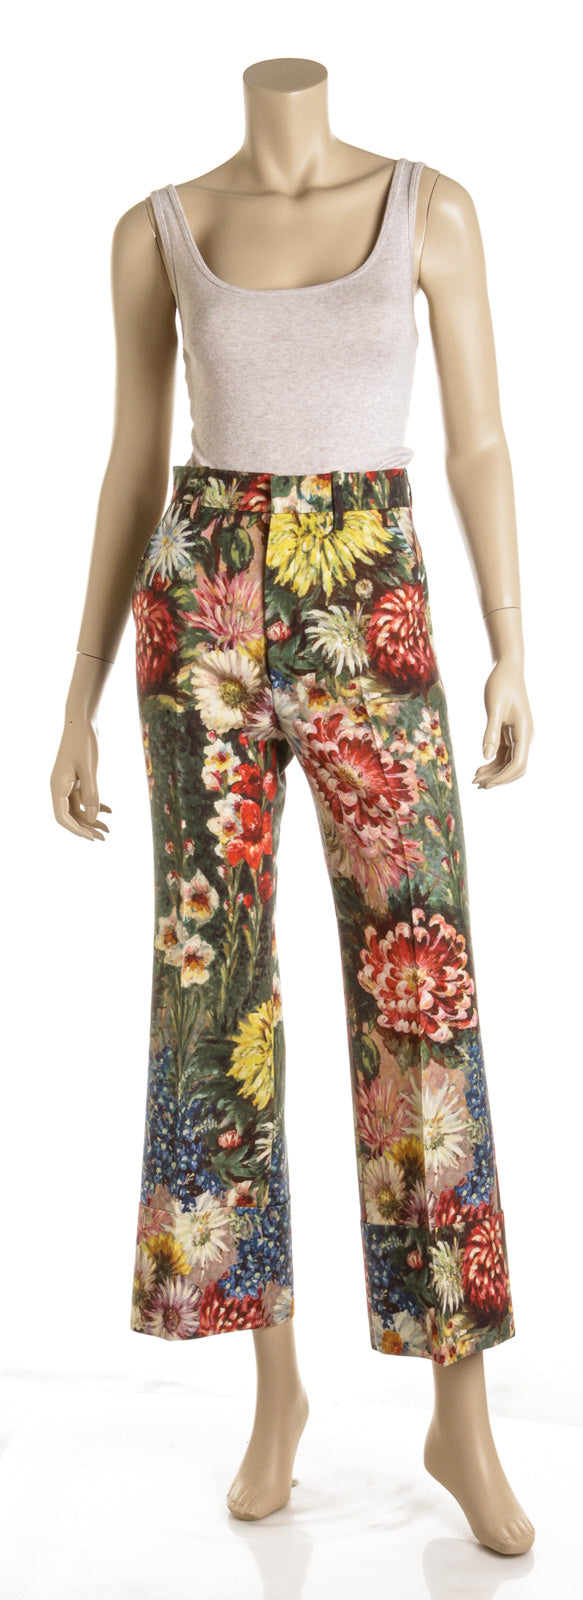 Gucci Multicolor Wool and Mohair Impressionist Floral Print Cuffed Pants (Size 38)